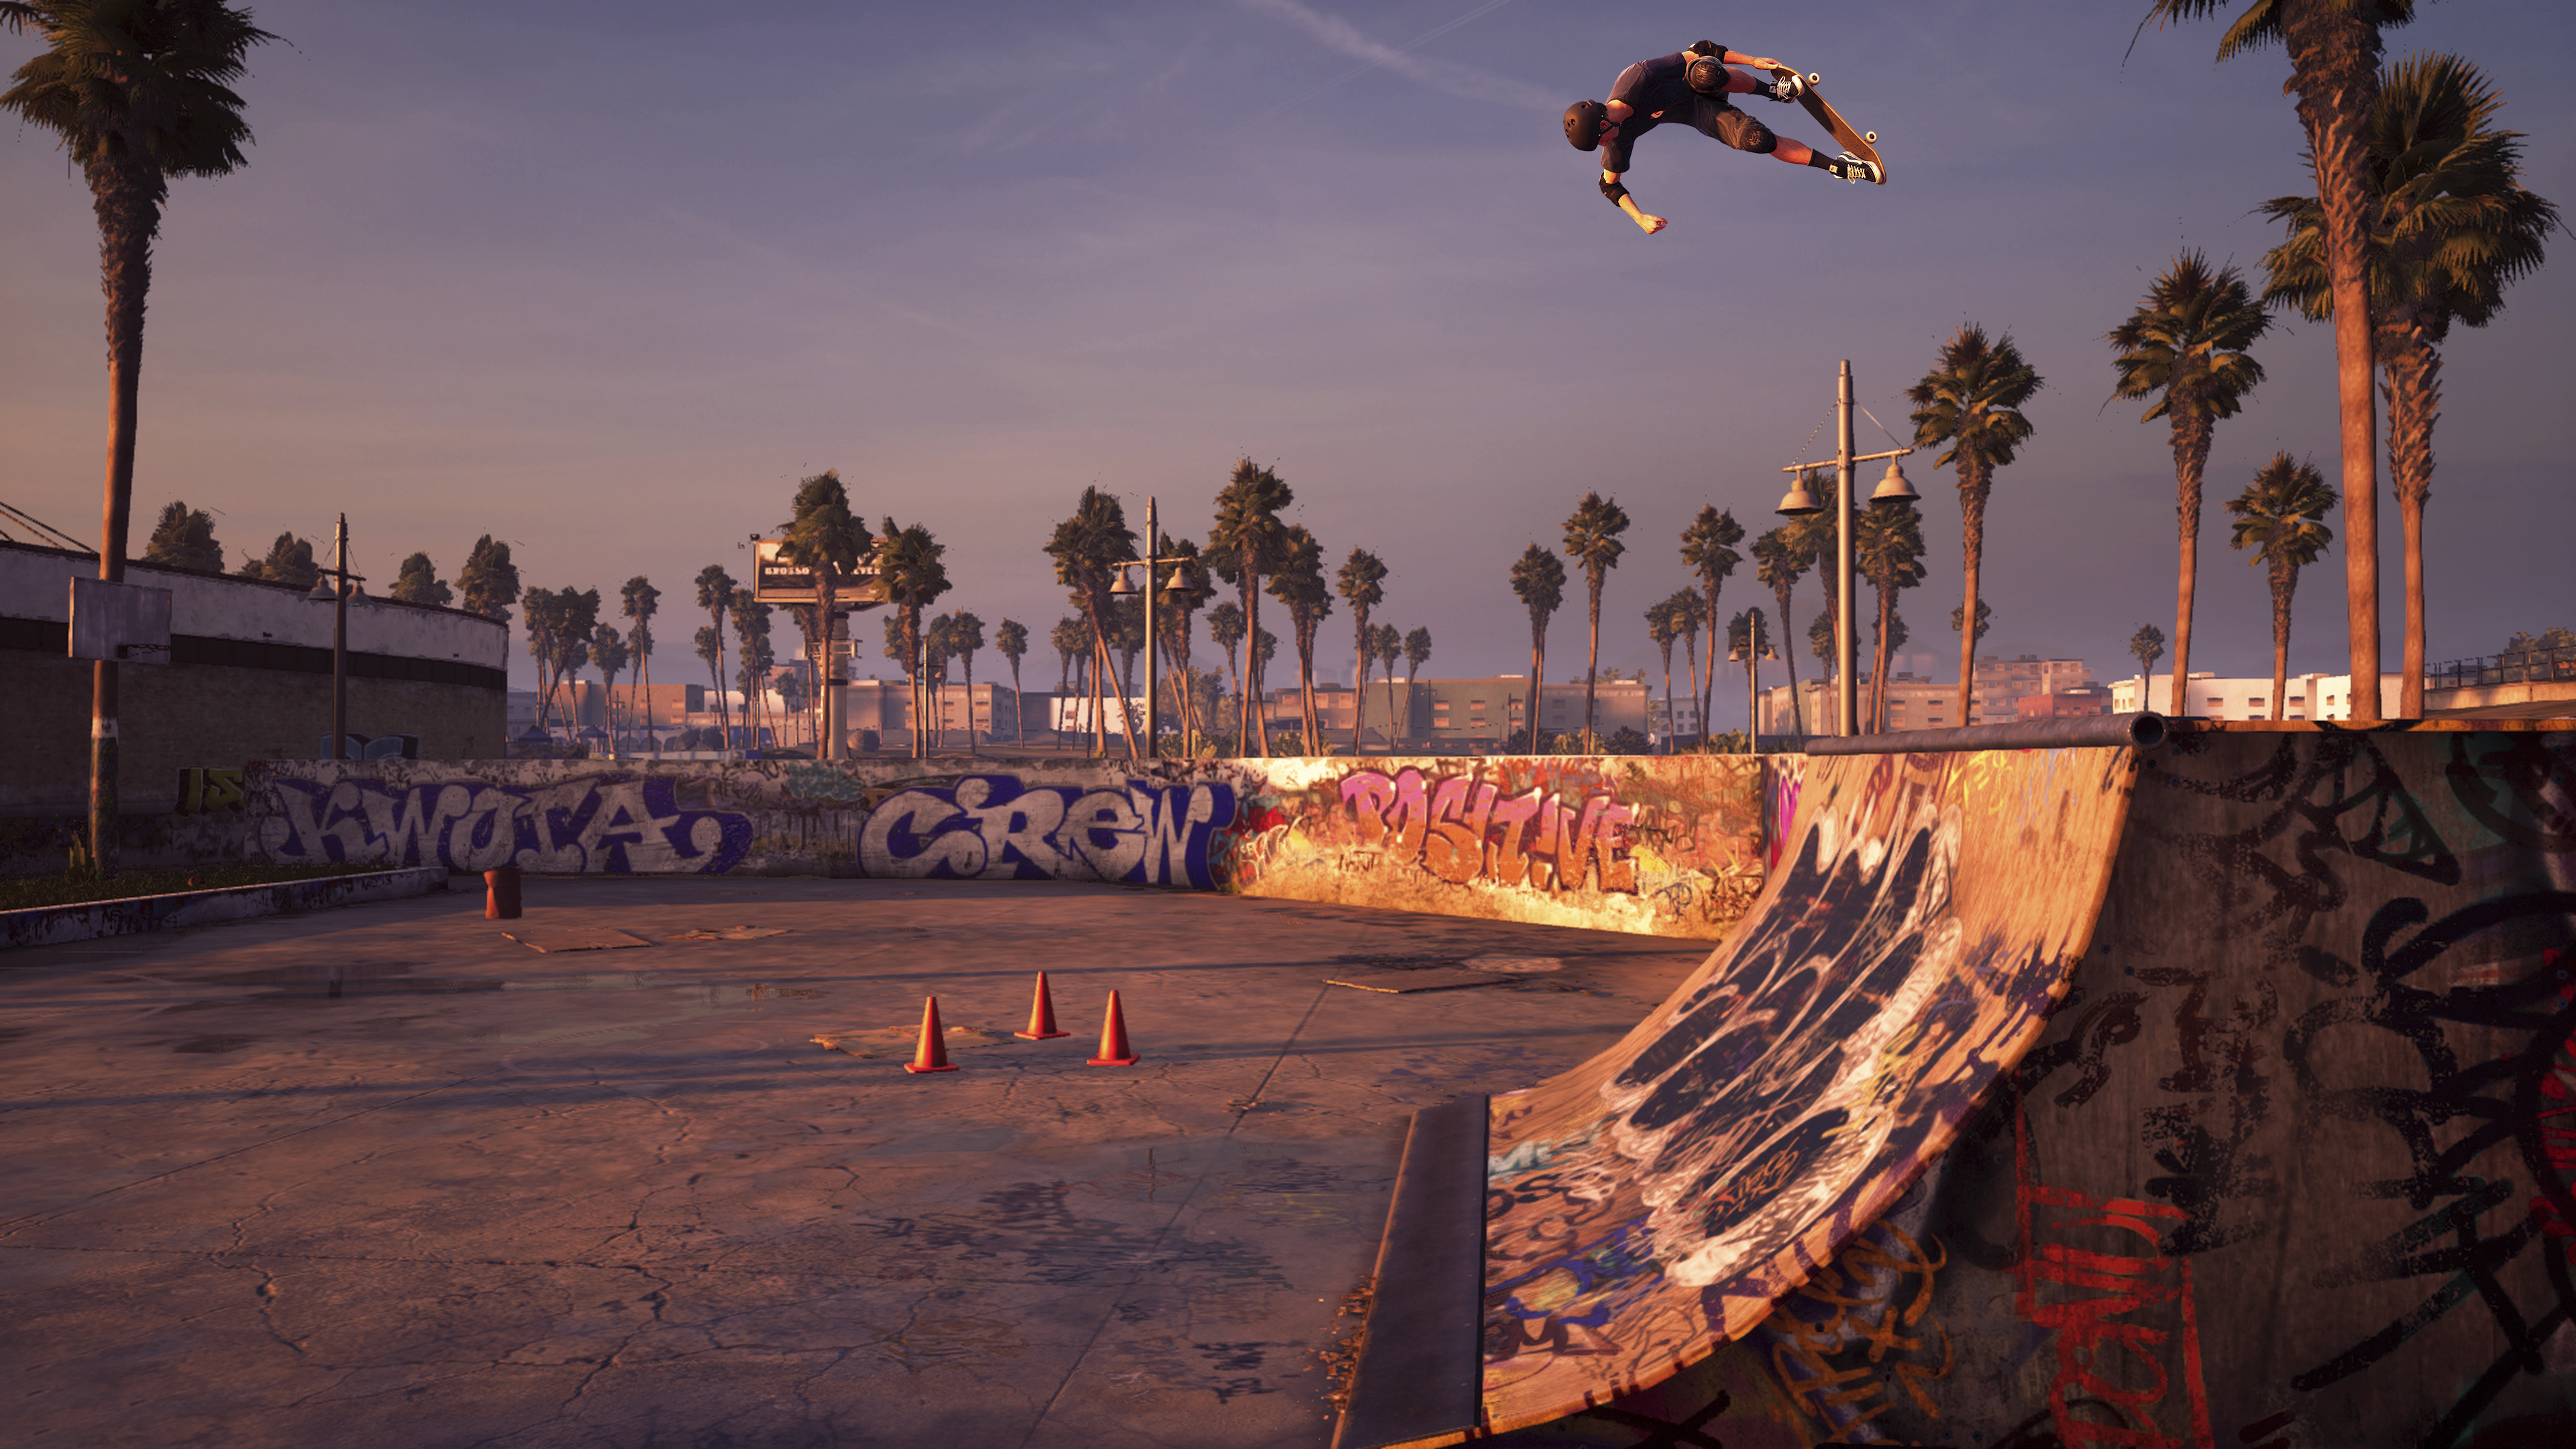 Tony Hawk's Pro Skater 1 + 2 - Gallery Screenshot 1